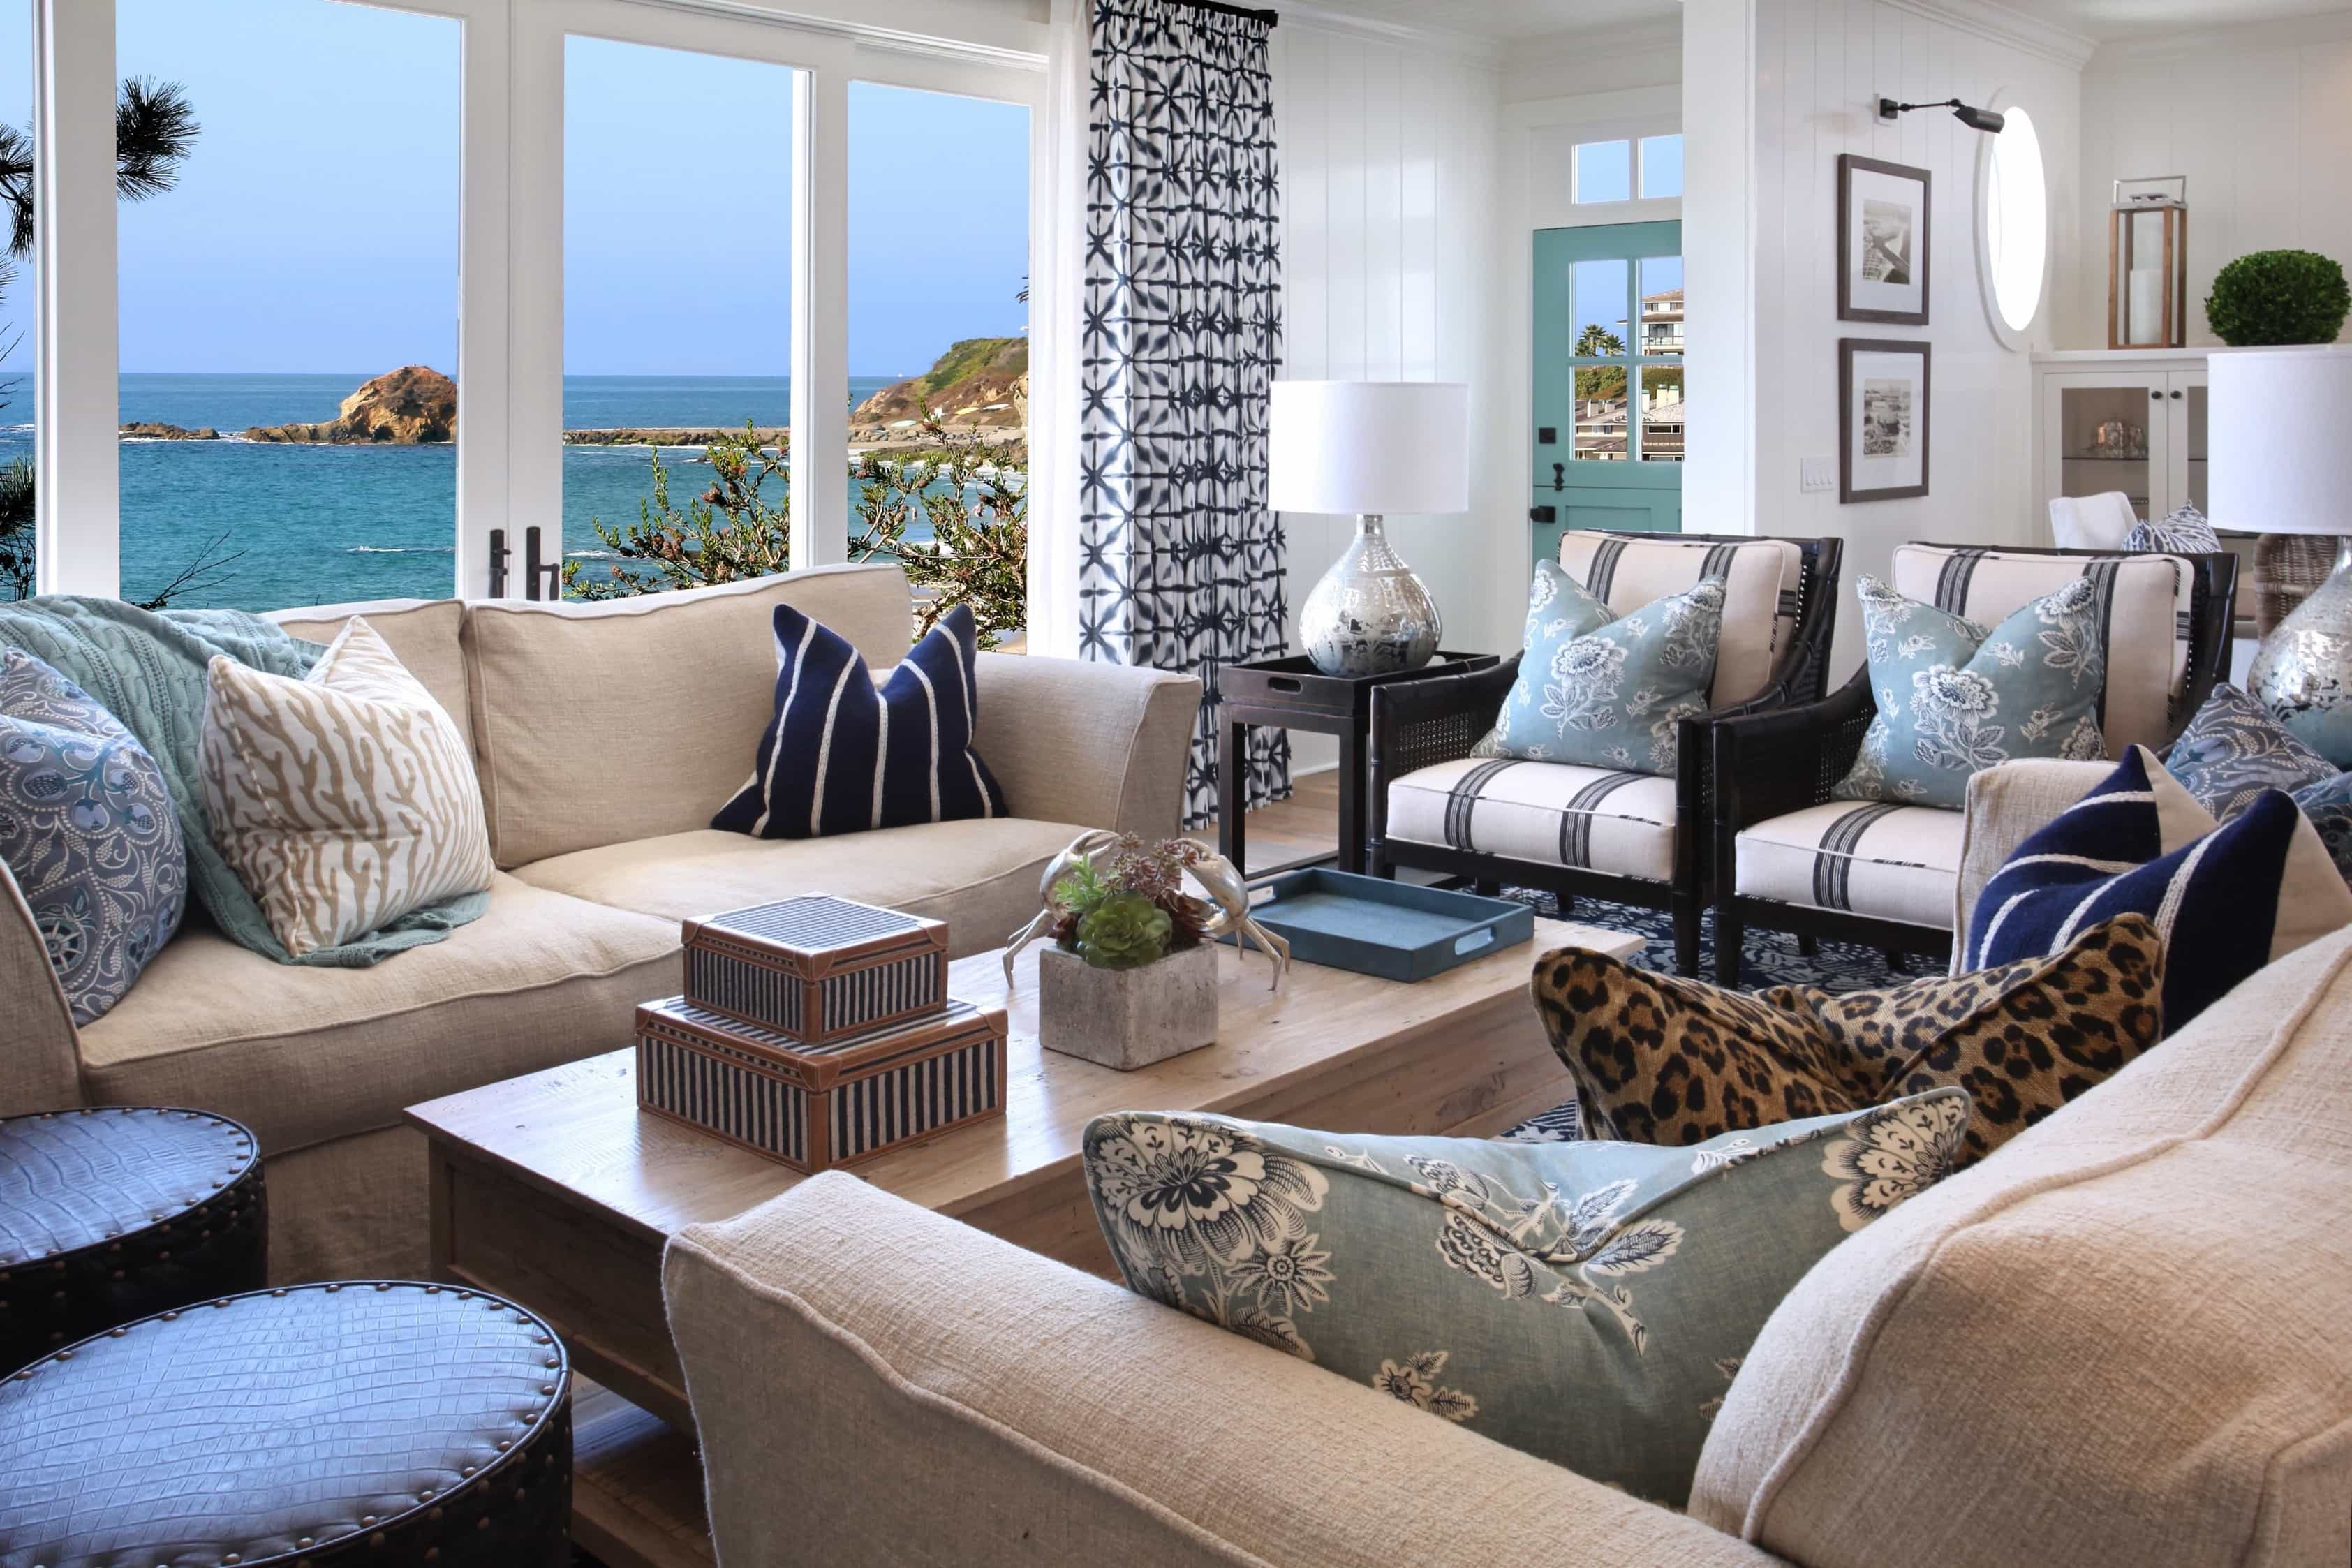 Featured Image of Blue And White Coastal Living Room With Ocean View